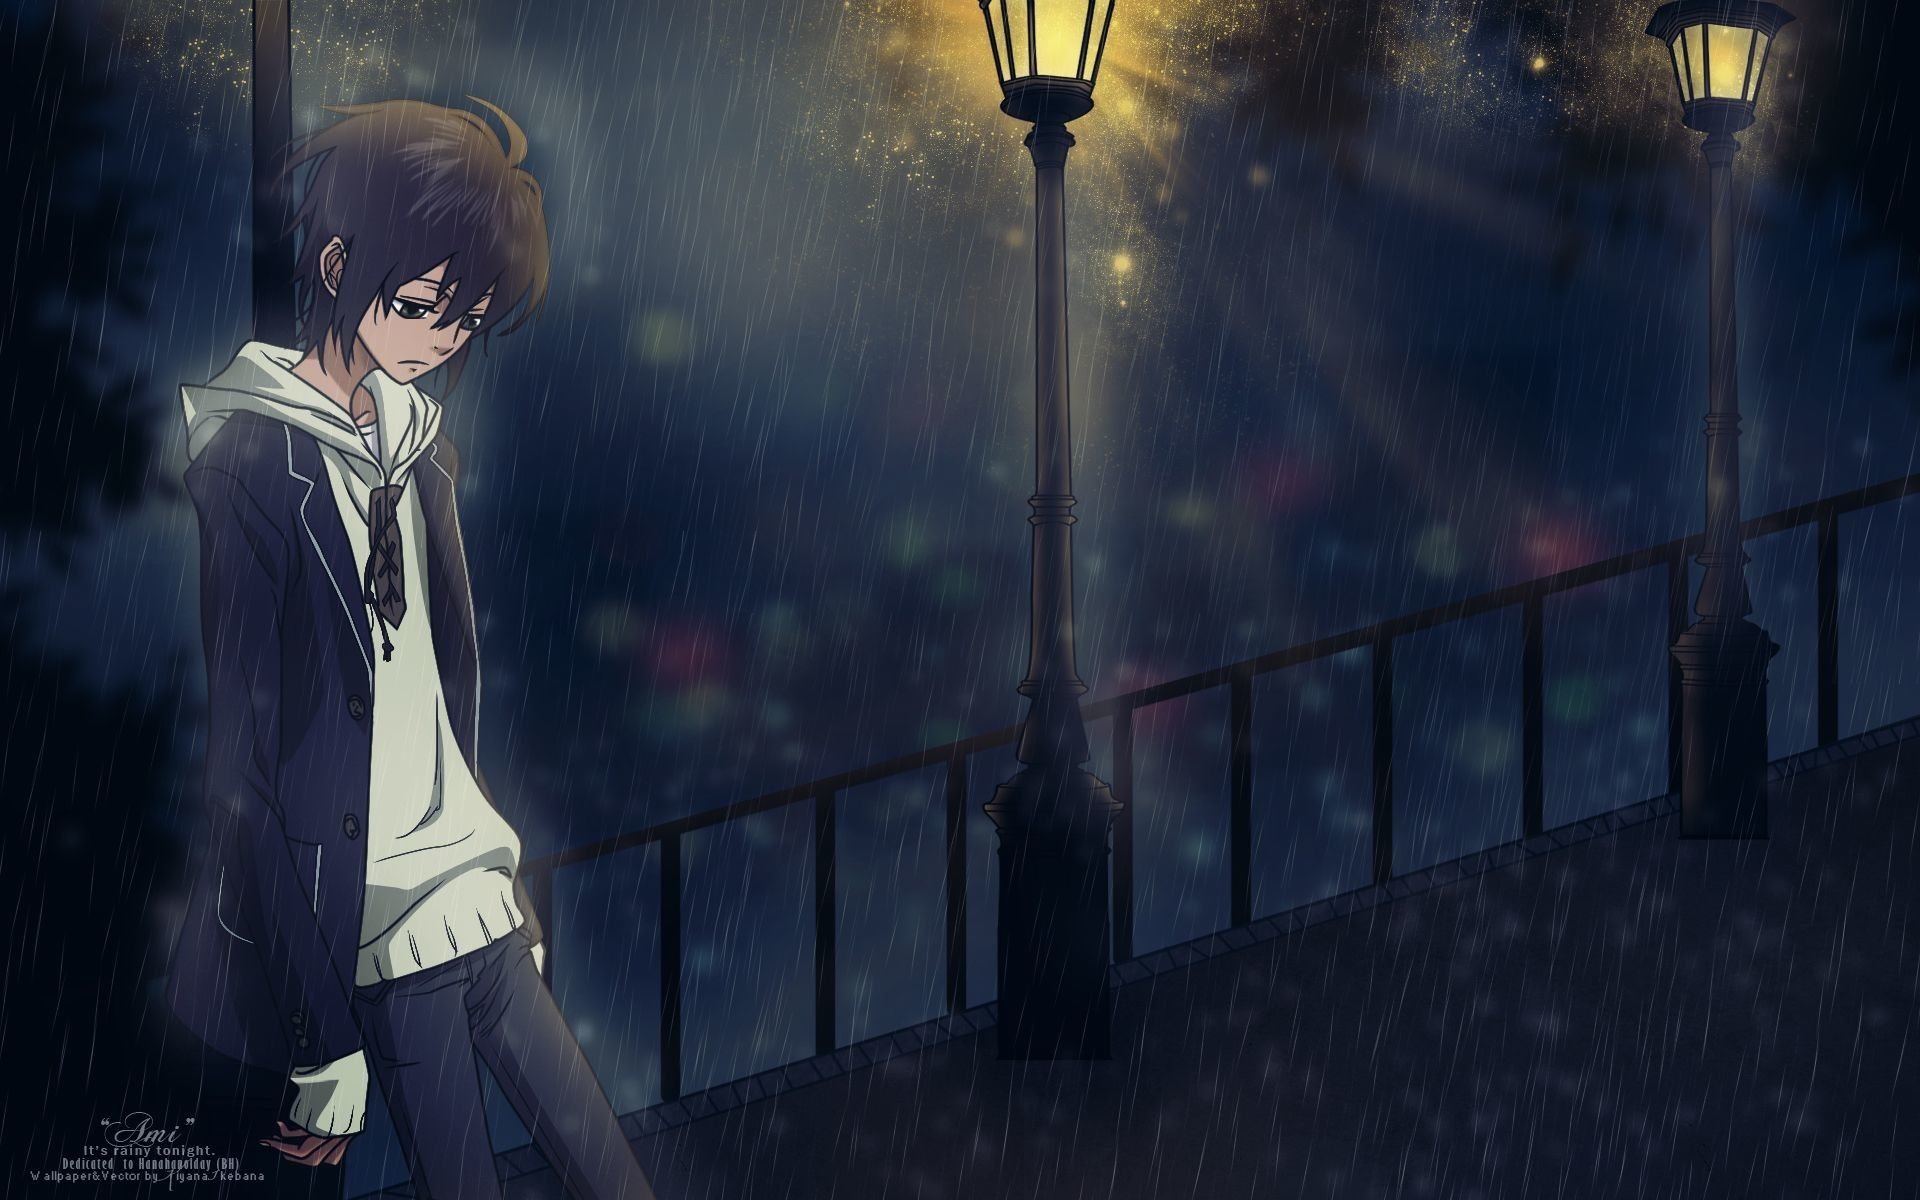 Rain Sad Anime School Wallpapers - Top Free Rain Sad Anime School